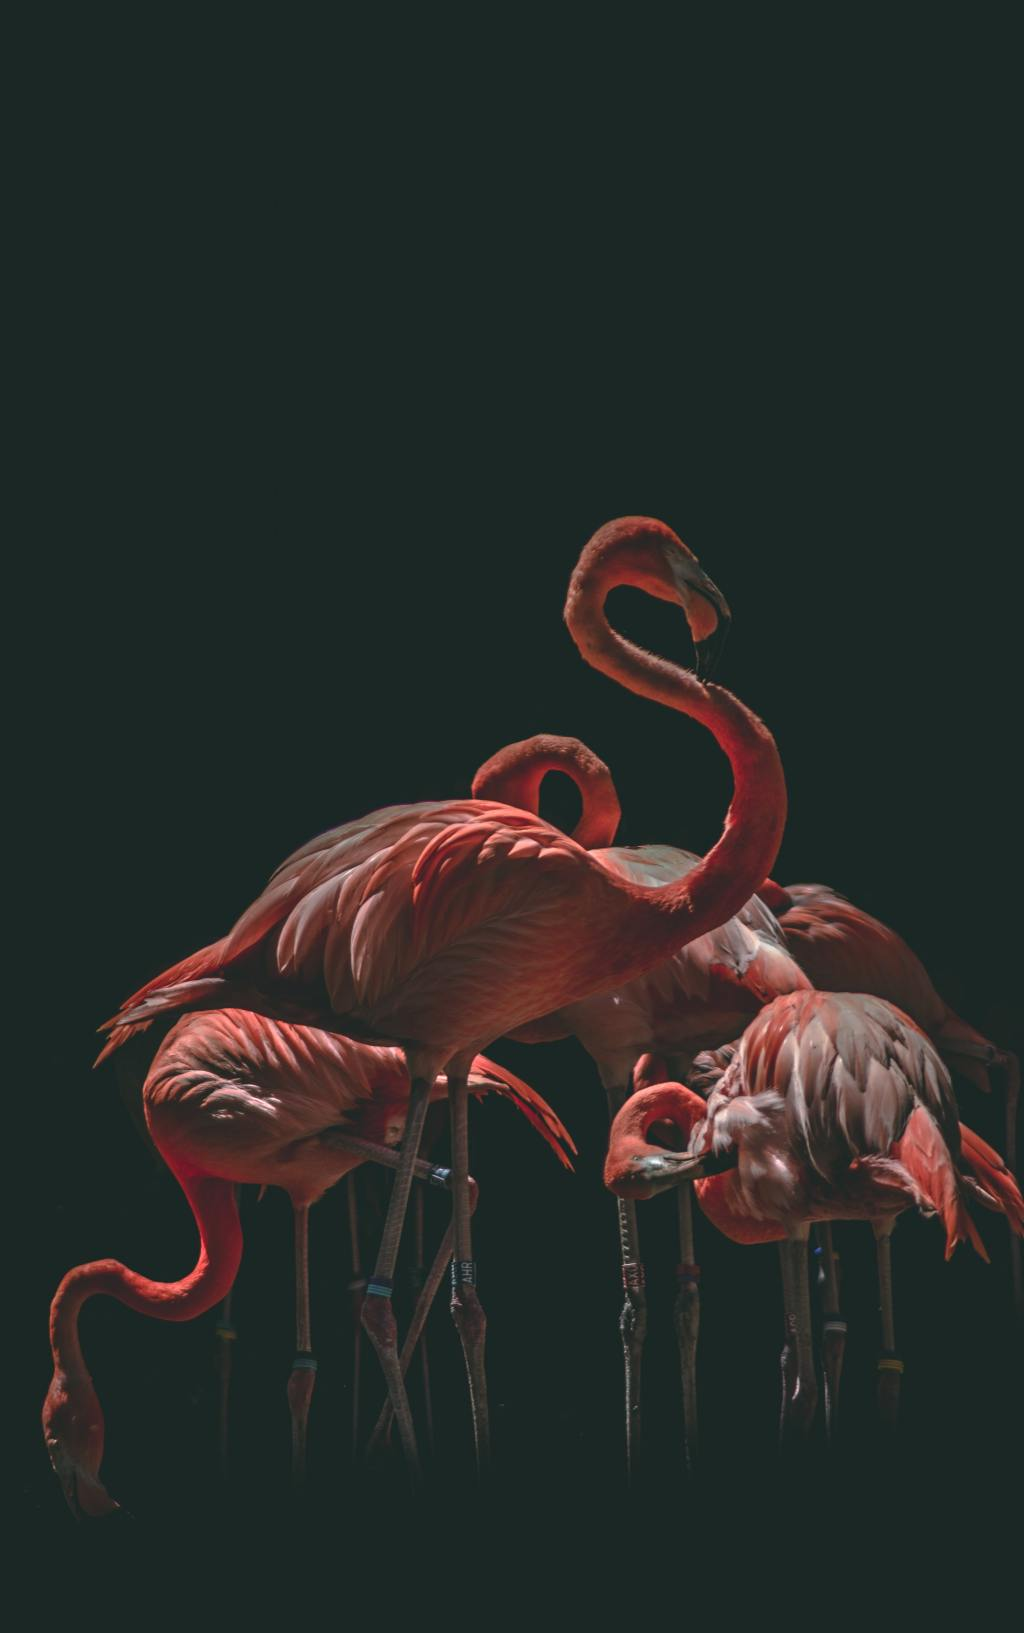 Flamants roses. Par Marko Blažević, https://unsplash.com/photos/hcVtC5pgZTY